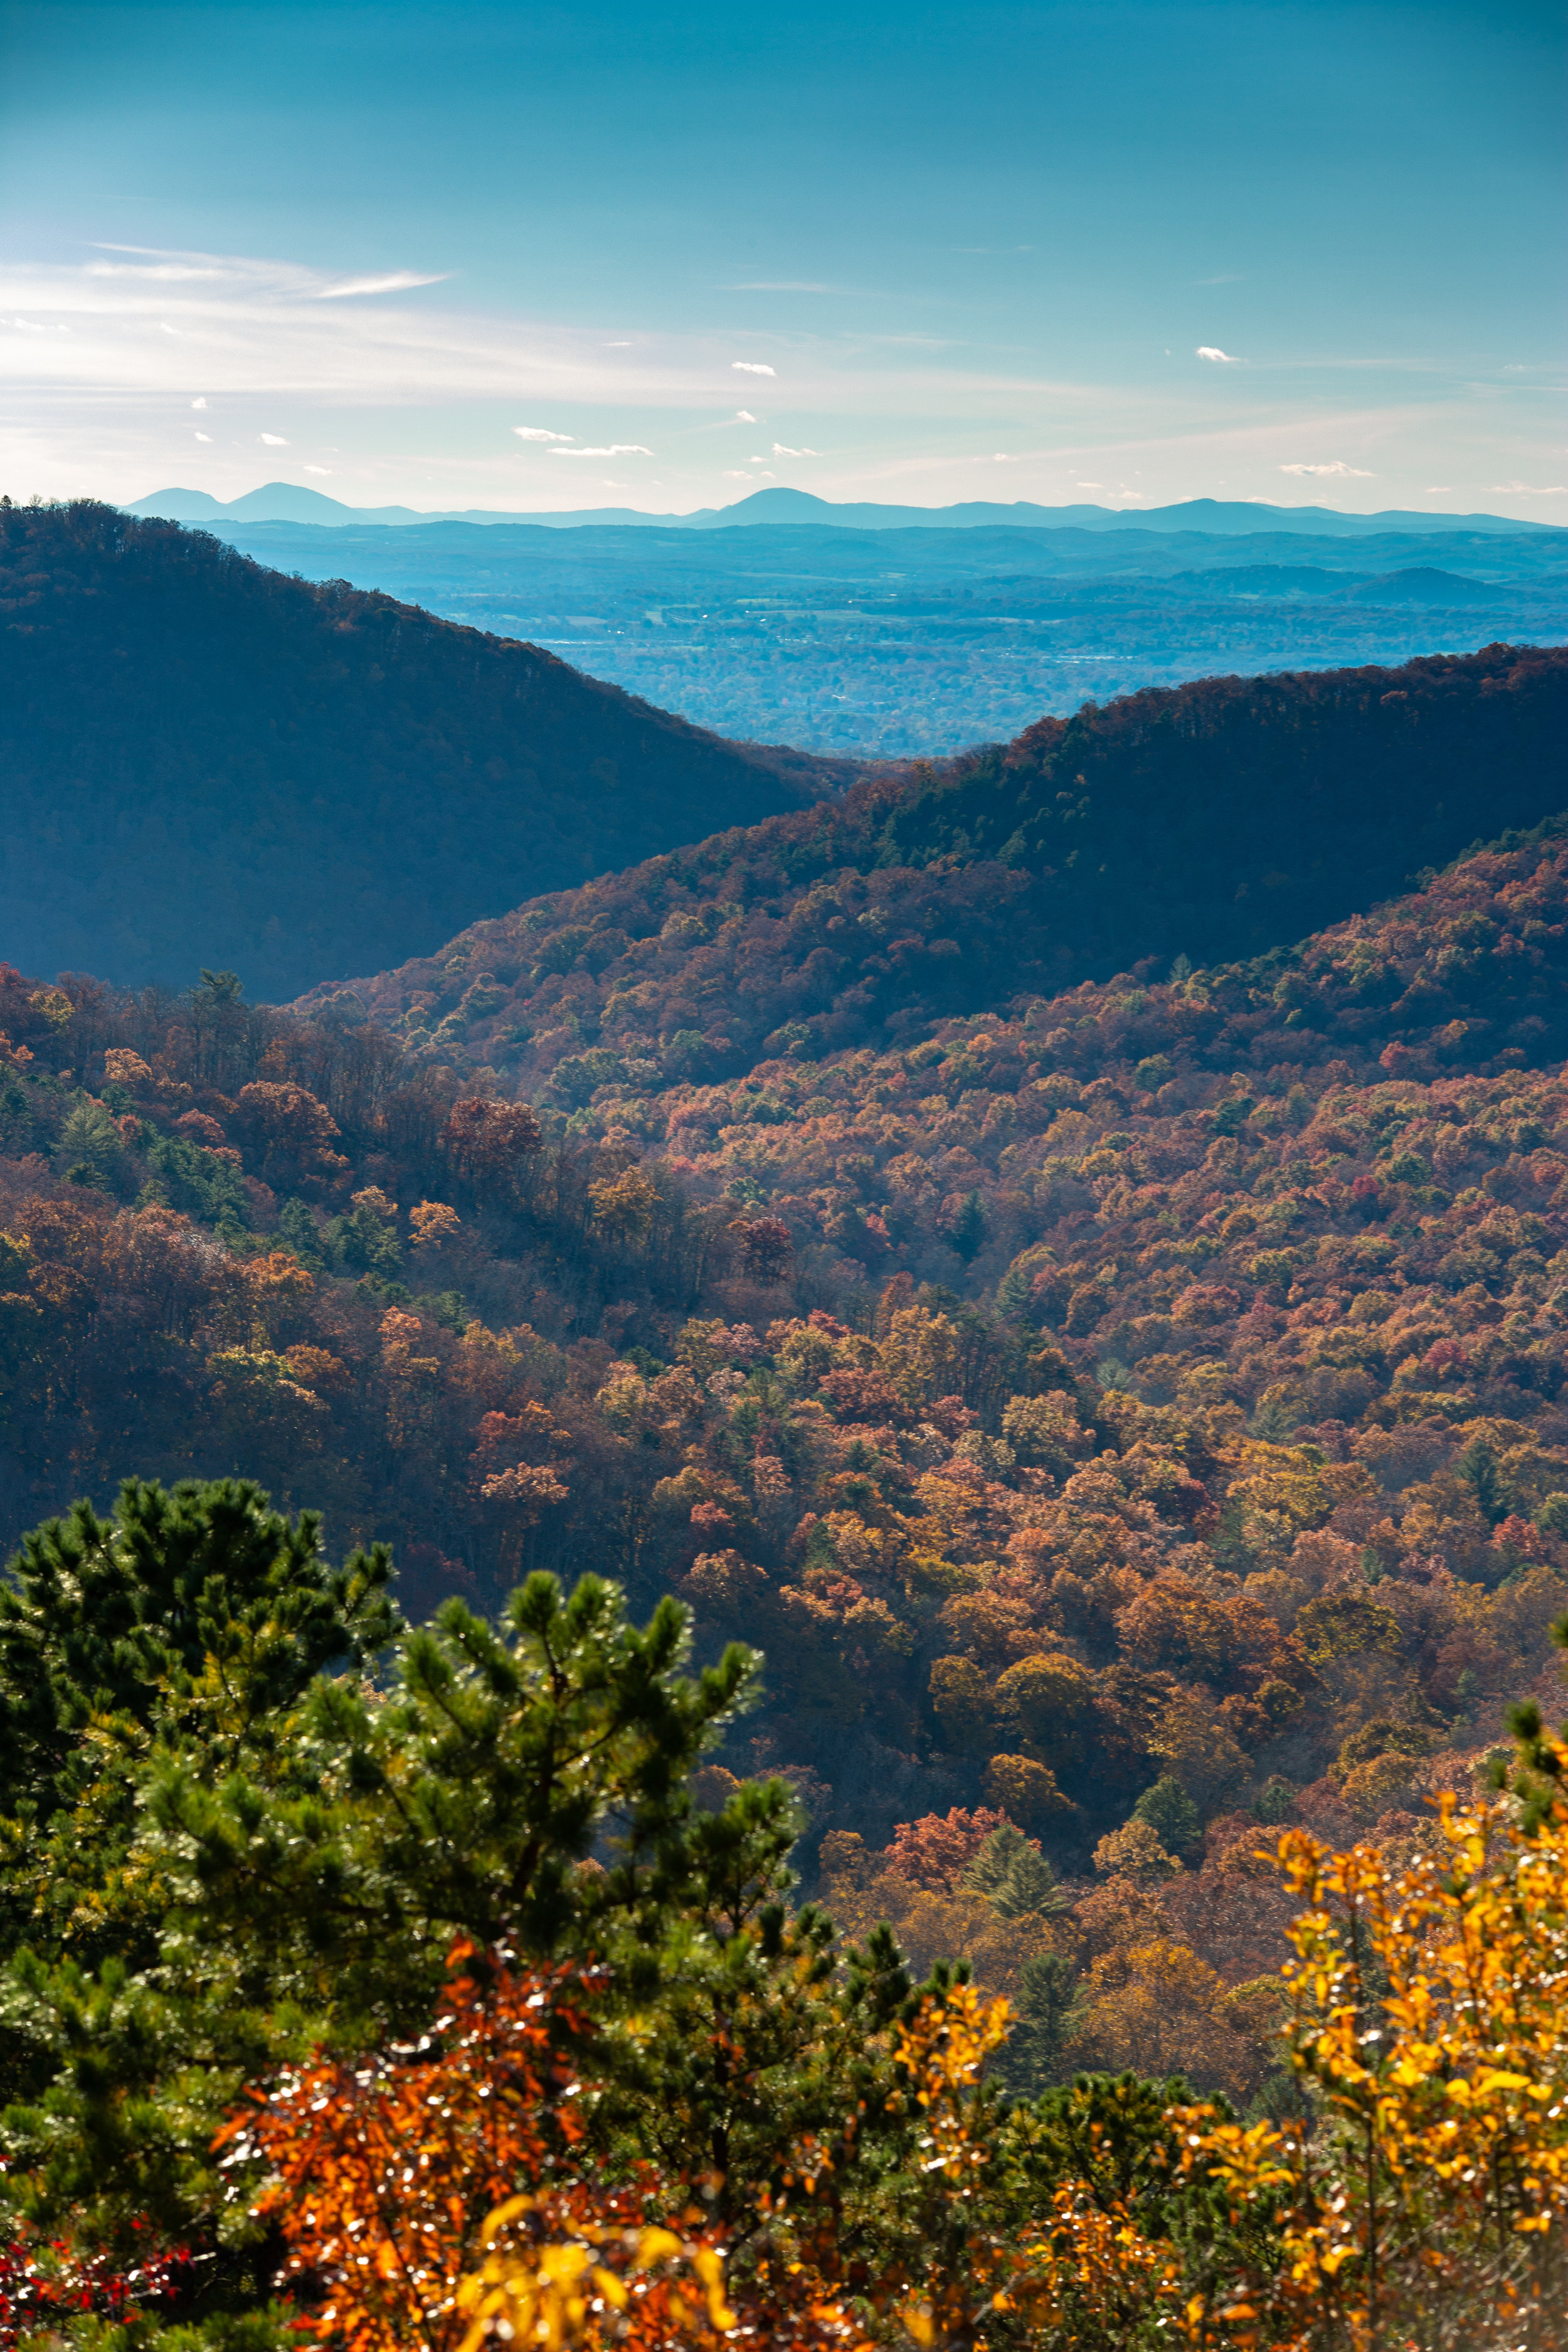 Shenandoah-National-Park-blue-ridge-parkway-day-mountains-afternoon-haze-layers-distance-texture-trees-fall-range-blue-depth